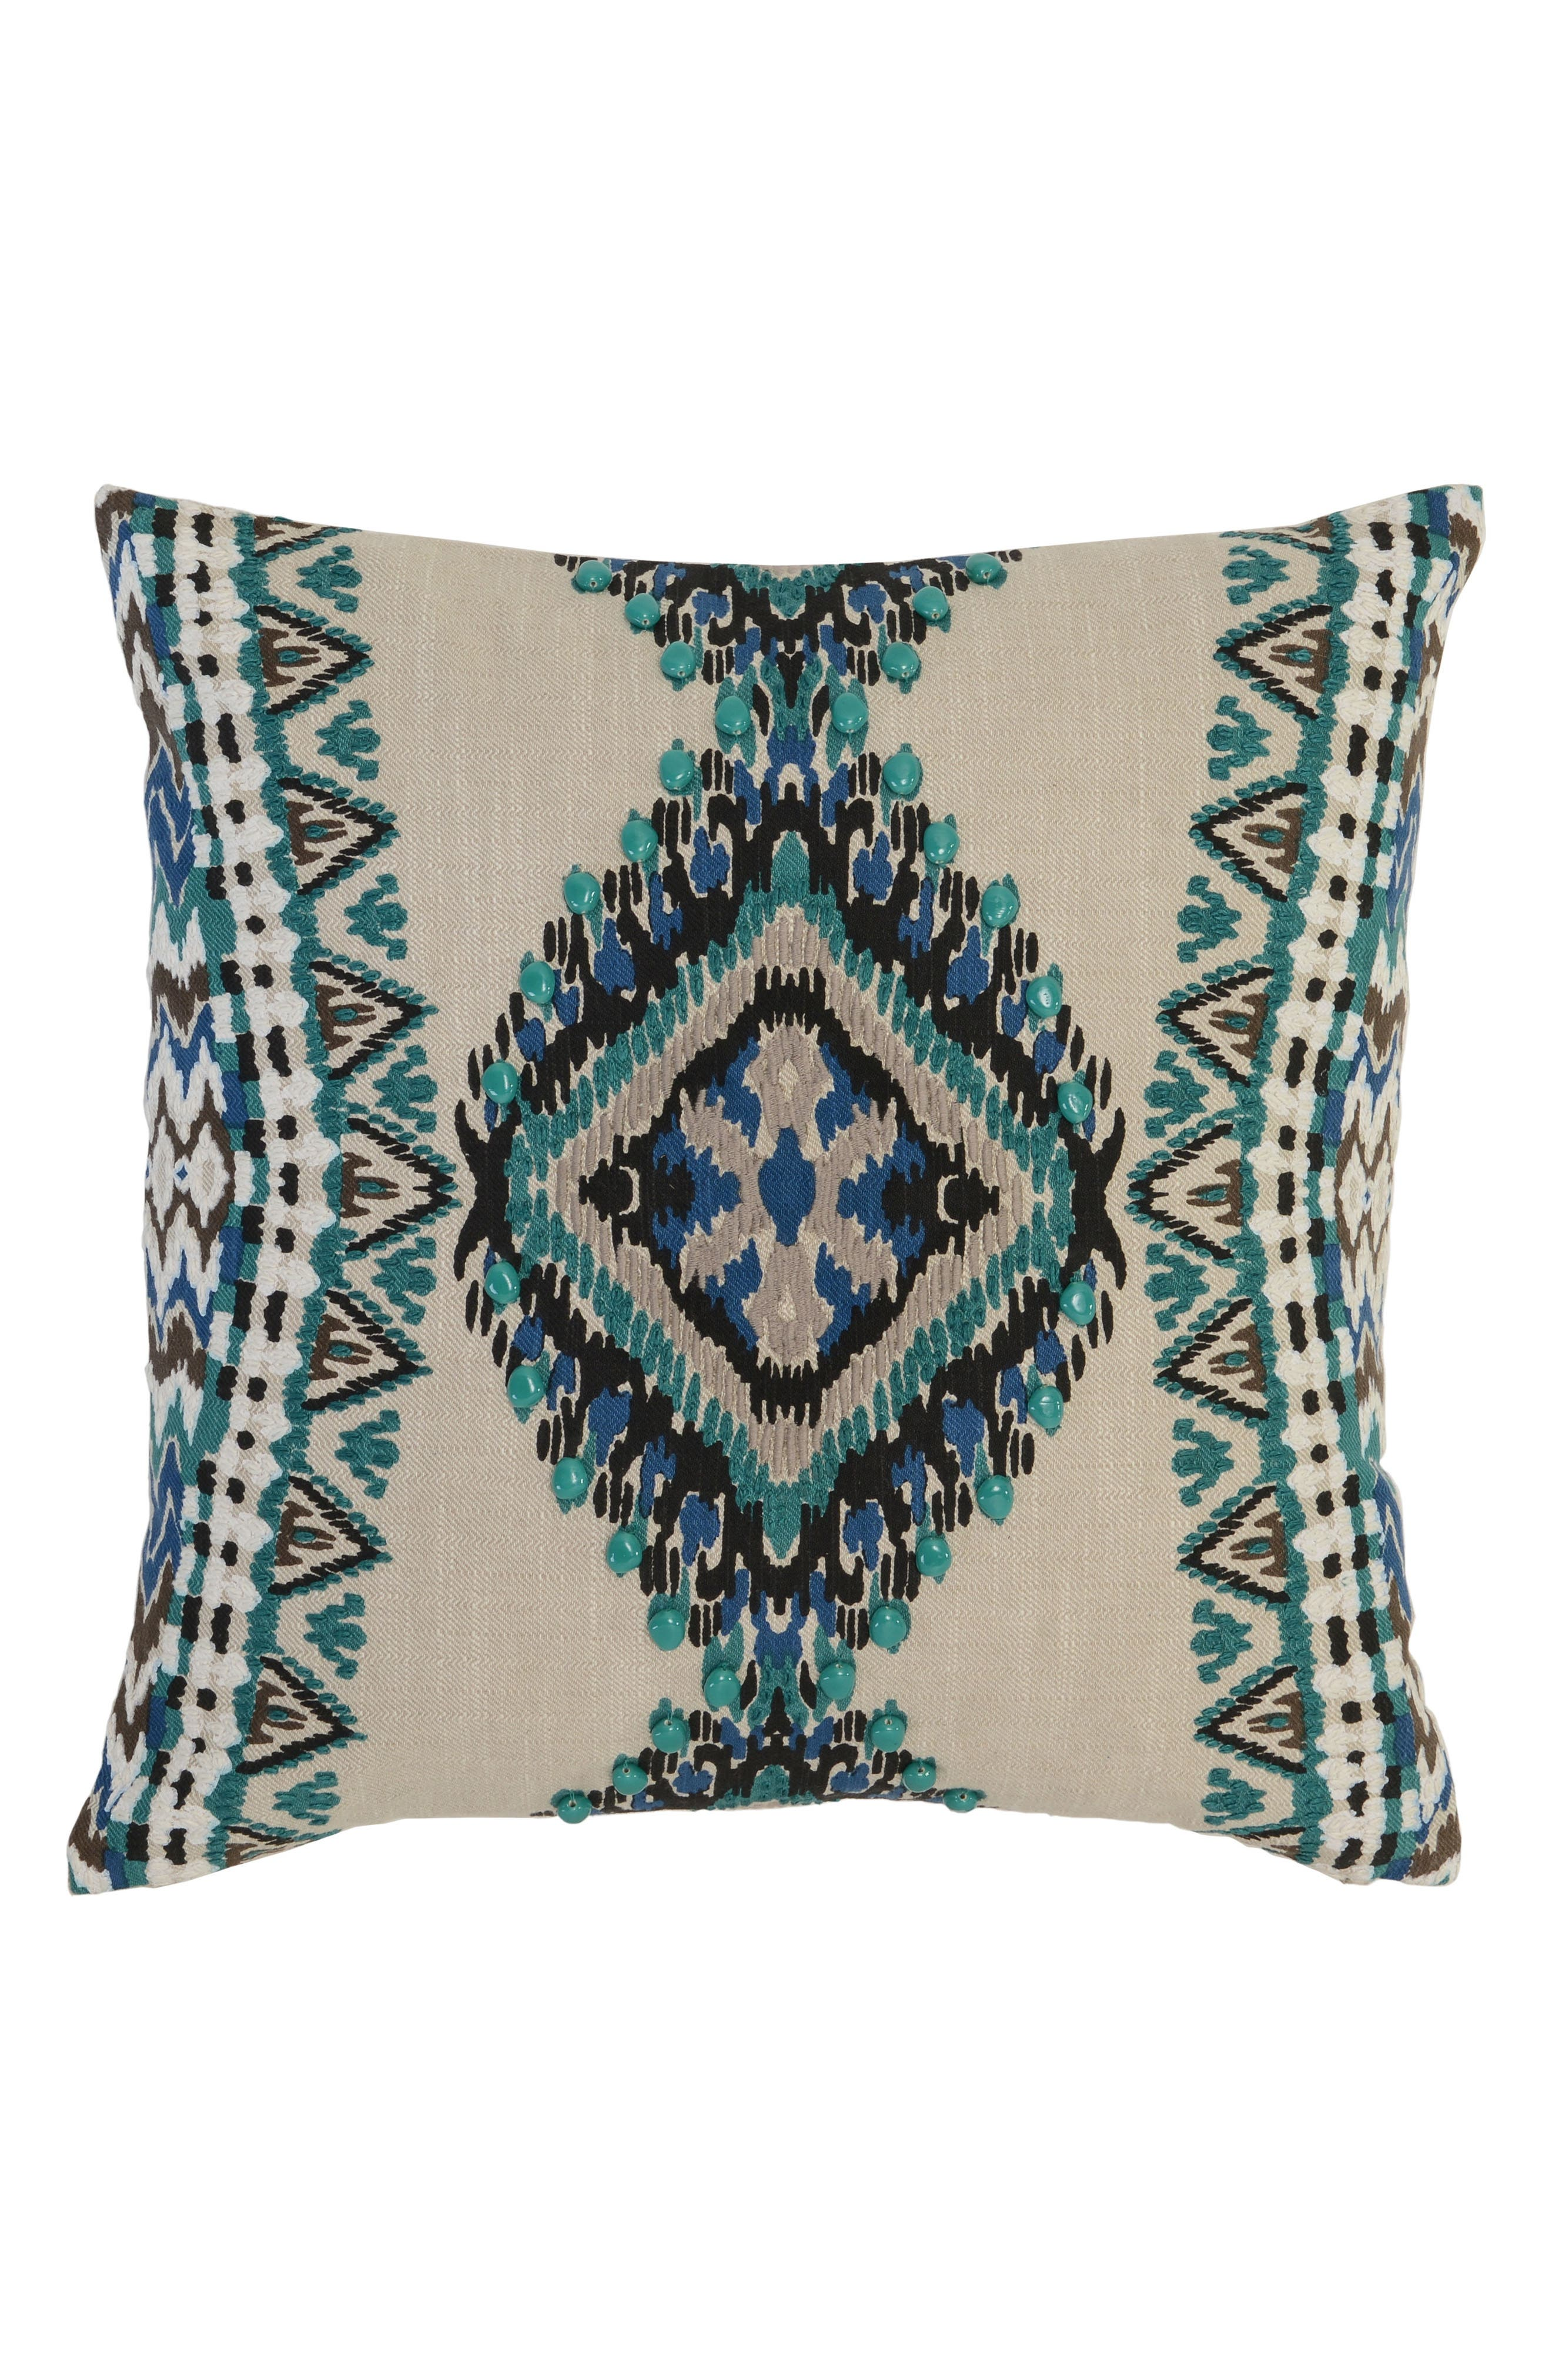 Chita Accent Pillow,                         Main,                         color, Teal/ Ivory